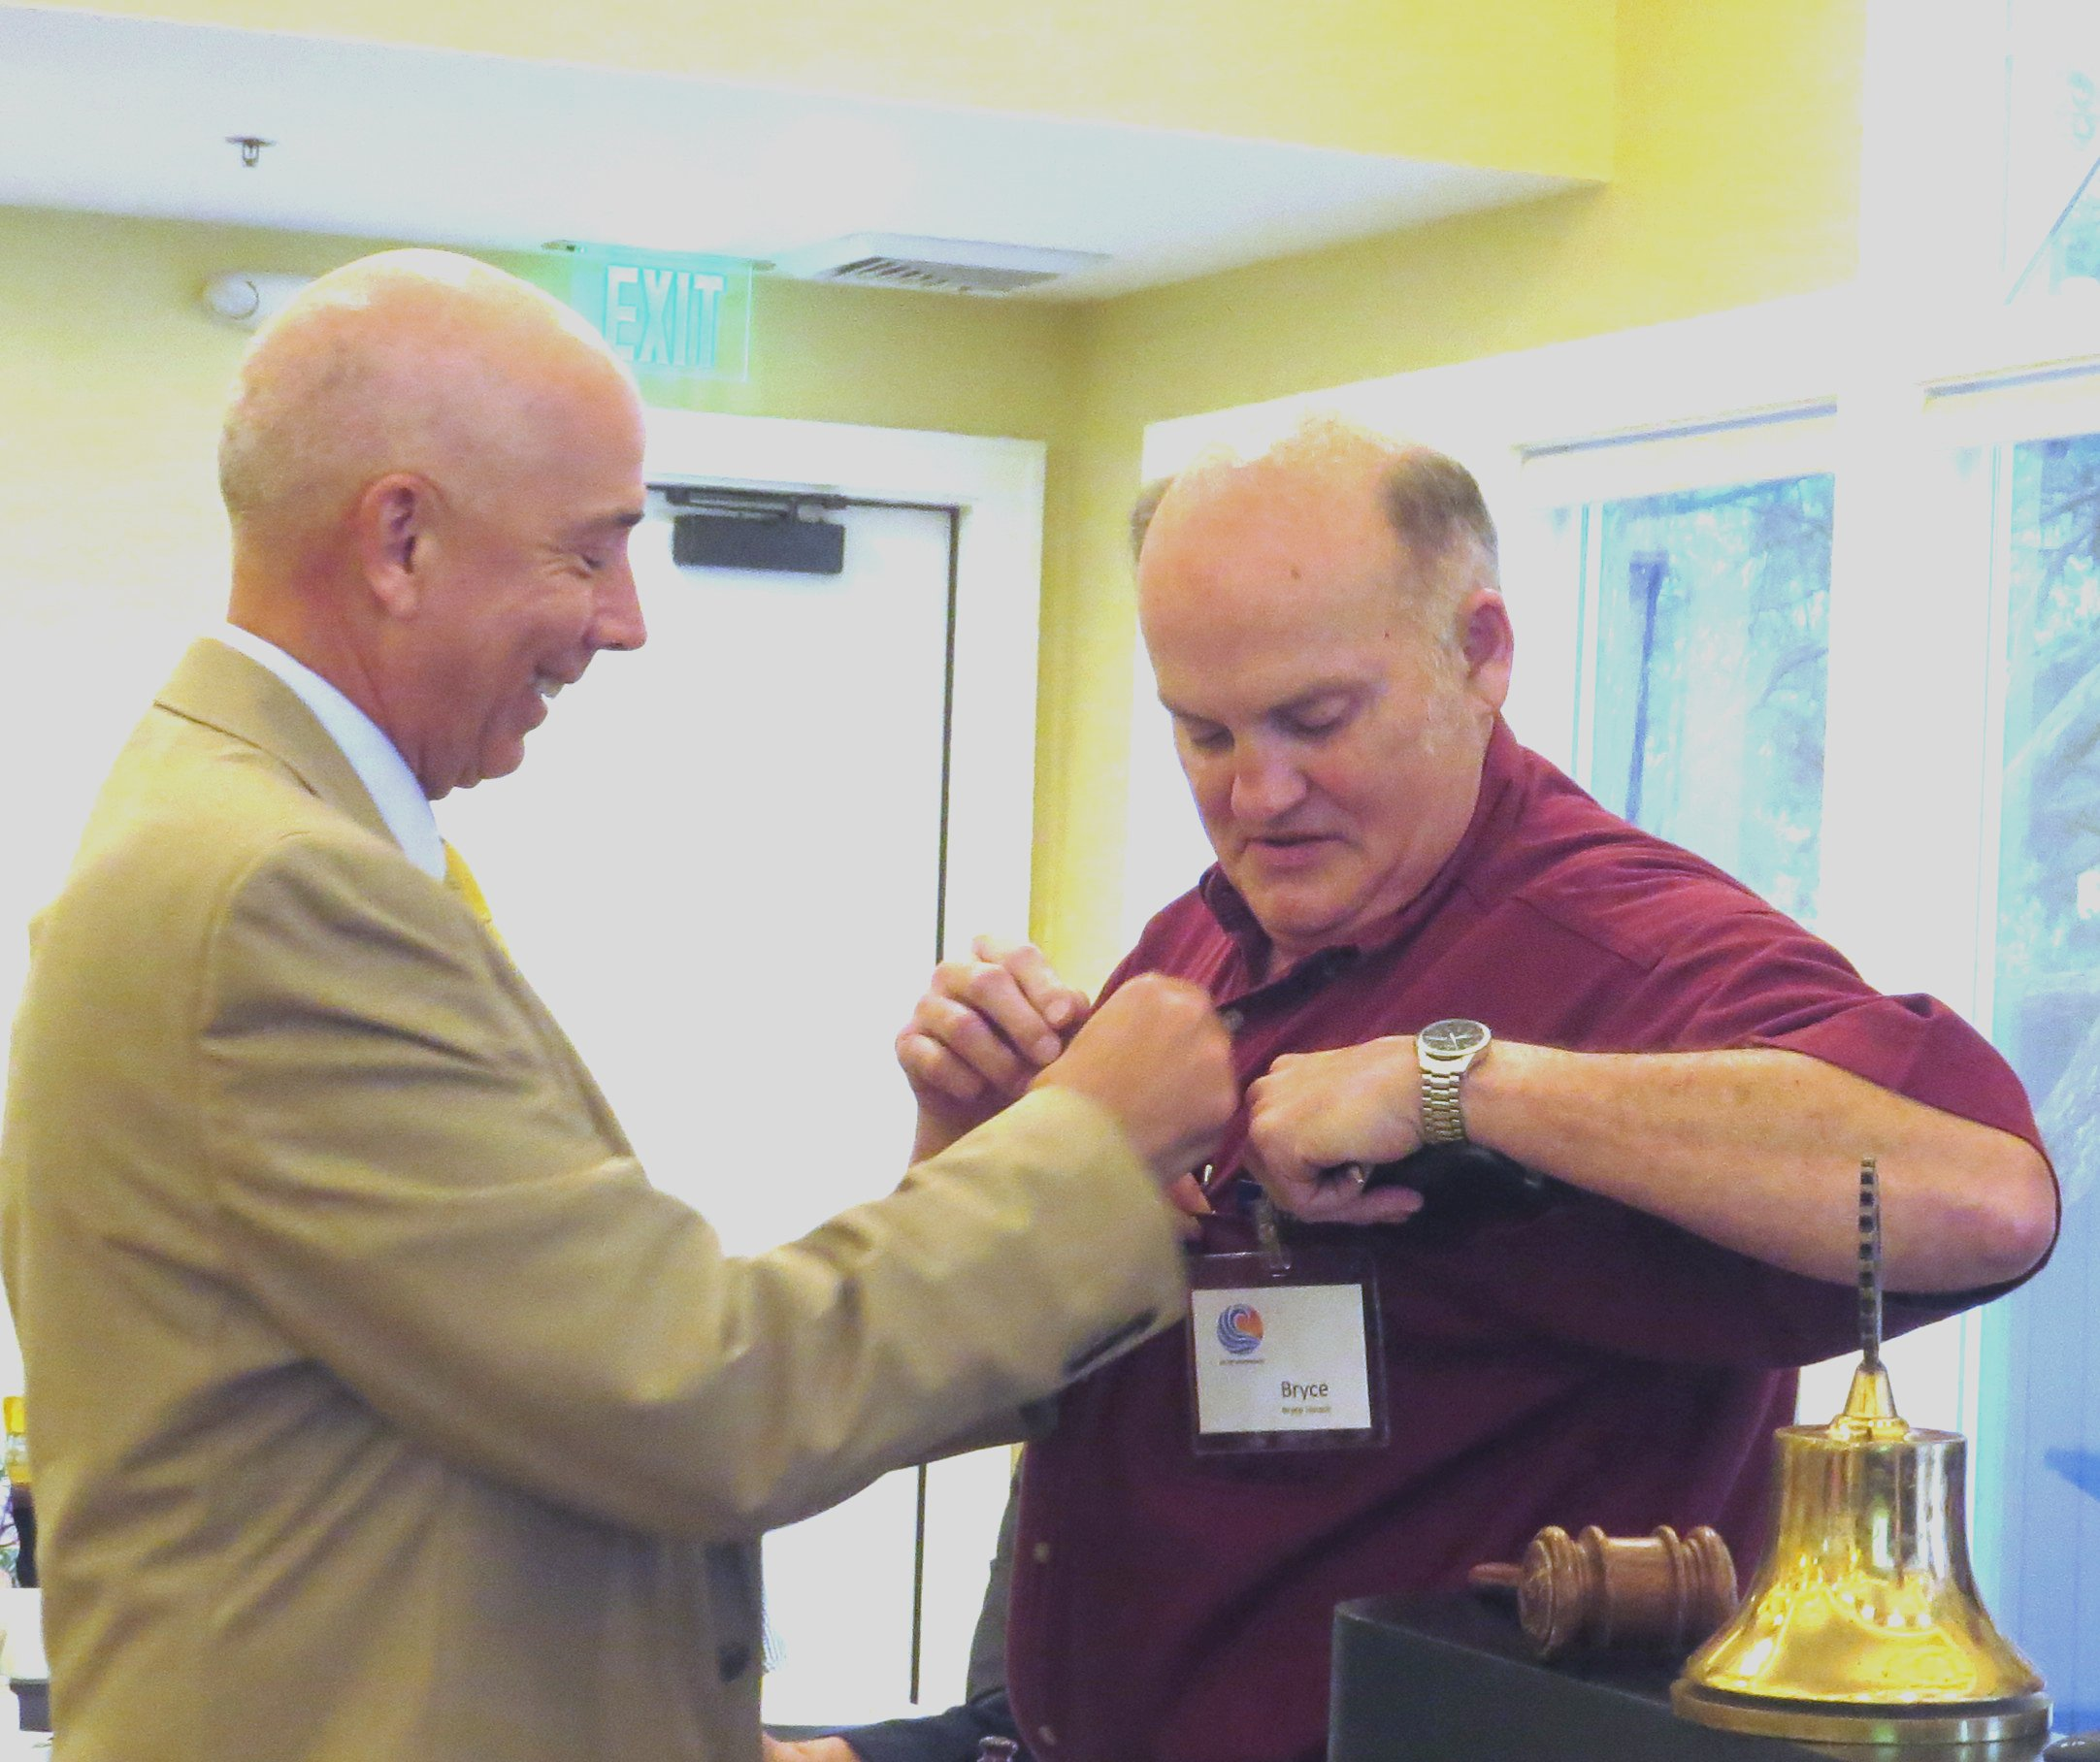 new member - Bryce received his Rotary pin from President Bill